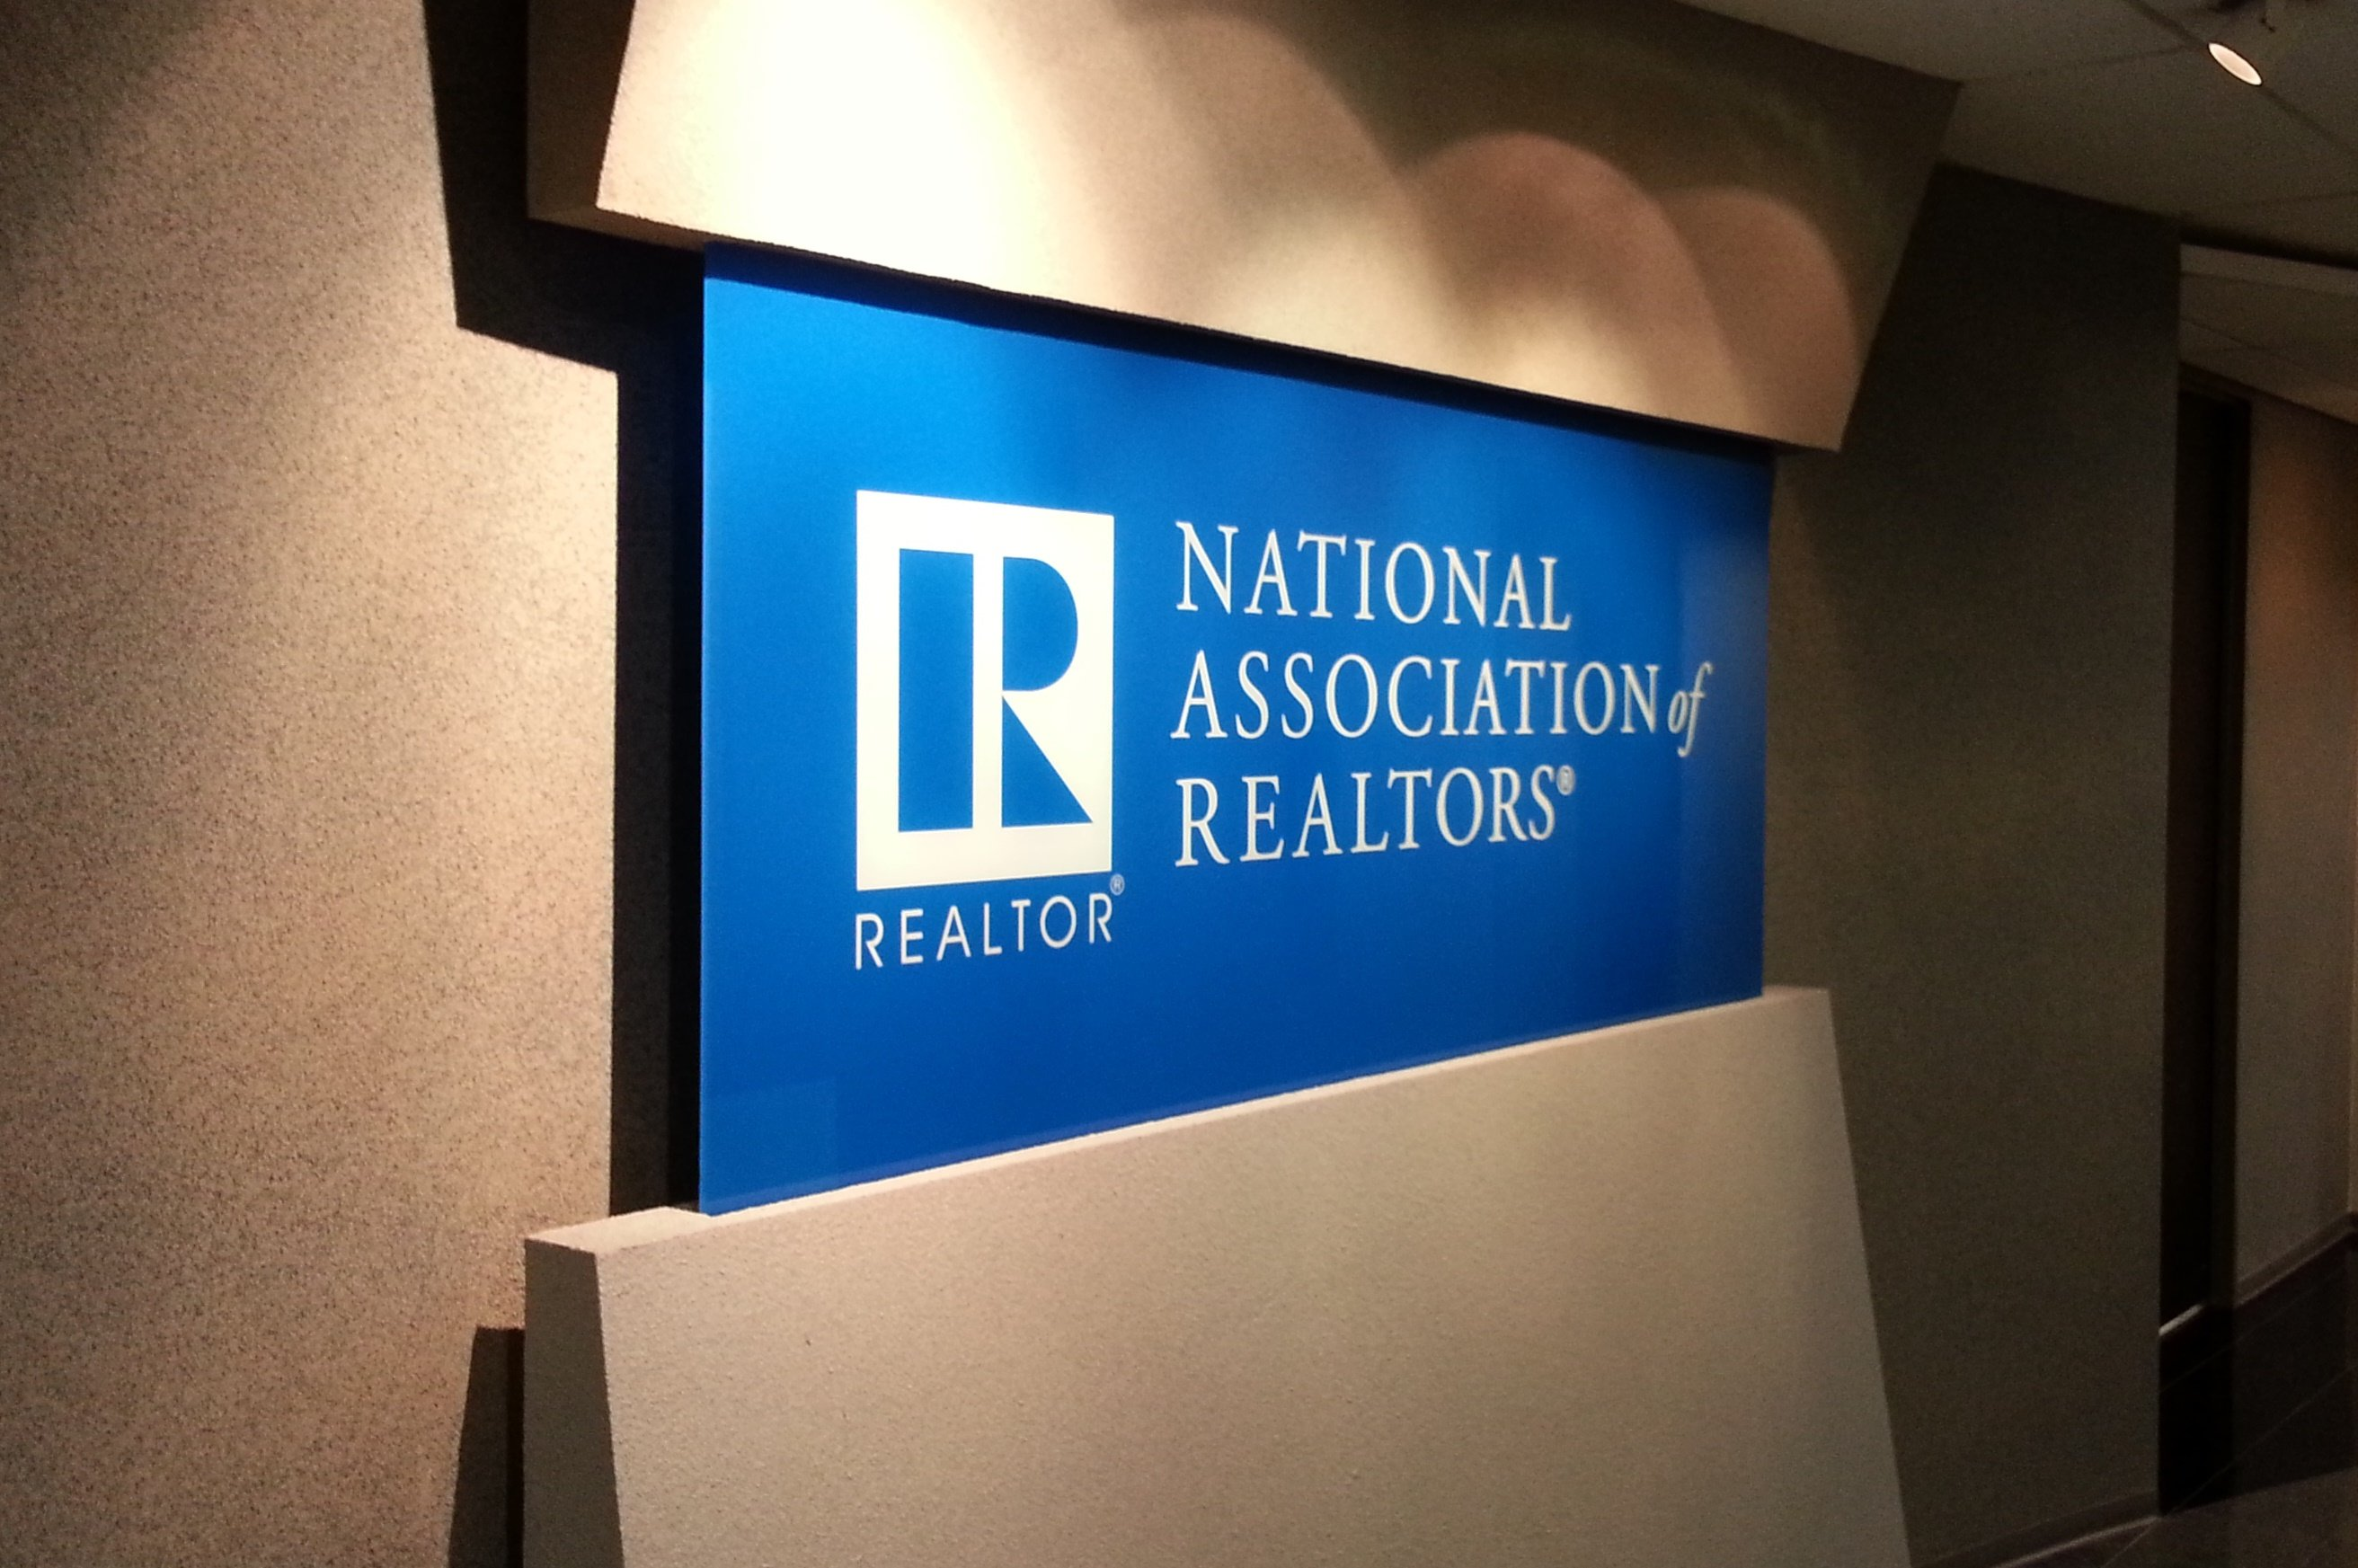 a company overview and history of the national association of realtors nar The realtors® community foundation, the 501(c)(3) charitable arm of boise regional realtors® (brr), will accept grant applications from qualifying ada and gem county nonprofits for its annual competitive grant cycle until sunday, september 30, 2018.